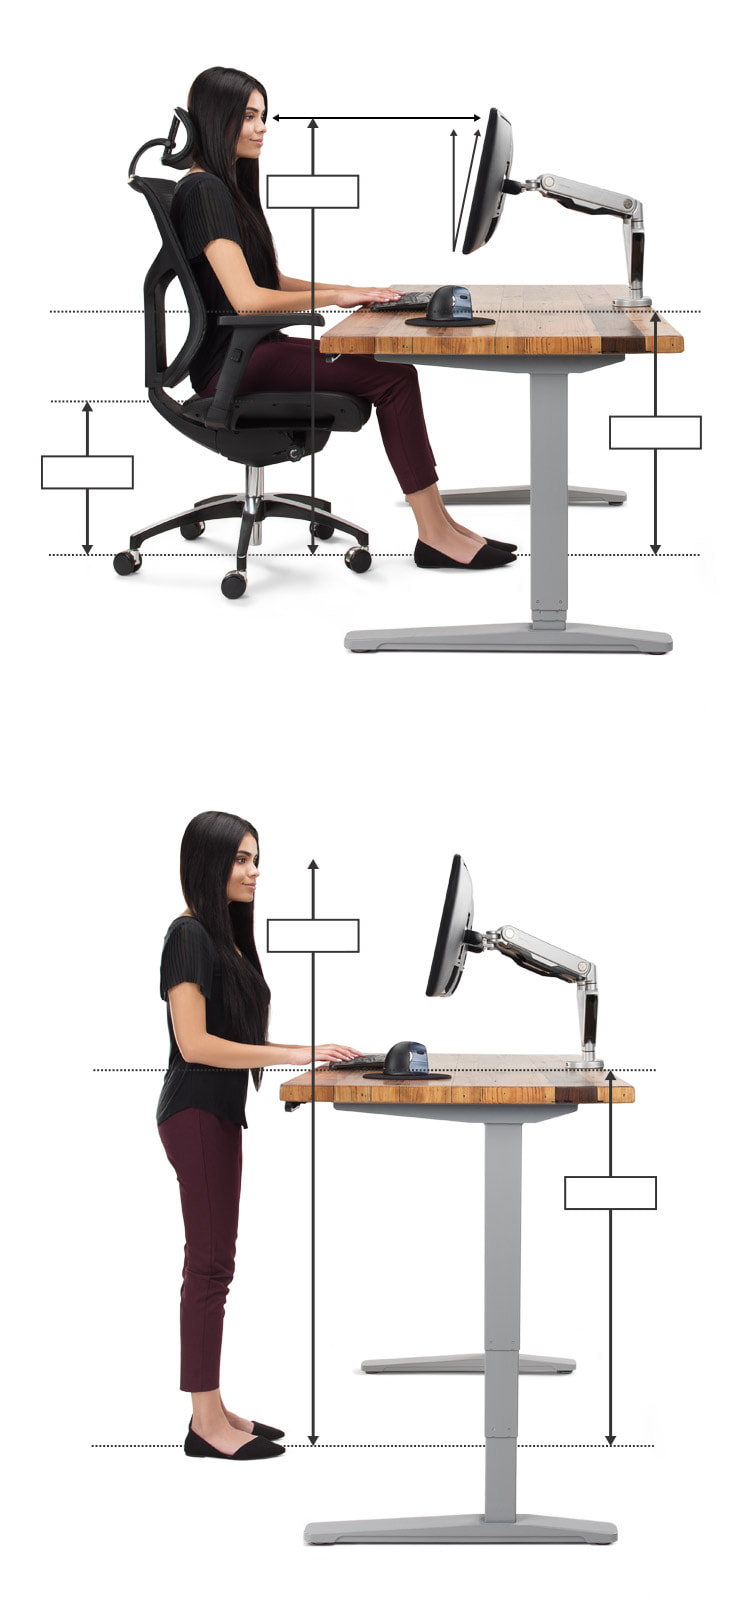 Ergonomic Workplace Calculator